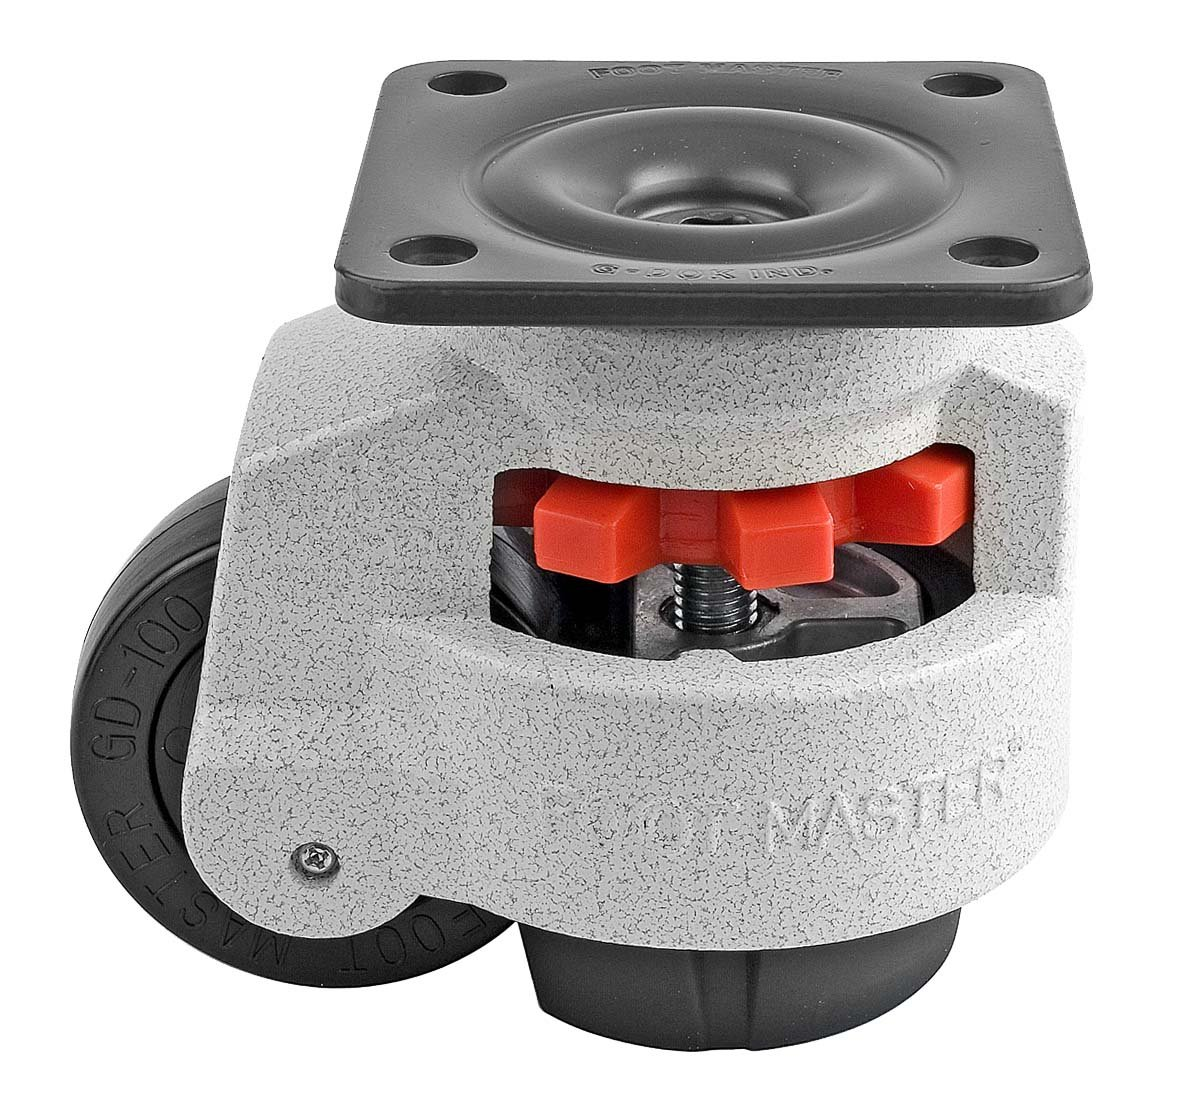 FOOTMASTER GD-100F Nylon Wheel and NBR Pad Leveling Caster, 1650 lbs, Top Plate 3 3/4'' x 3 3/4'', Bolt Holes 2 3/4'' x 2 3/4'', Ivory Finish